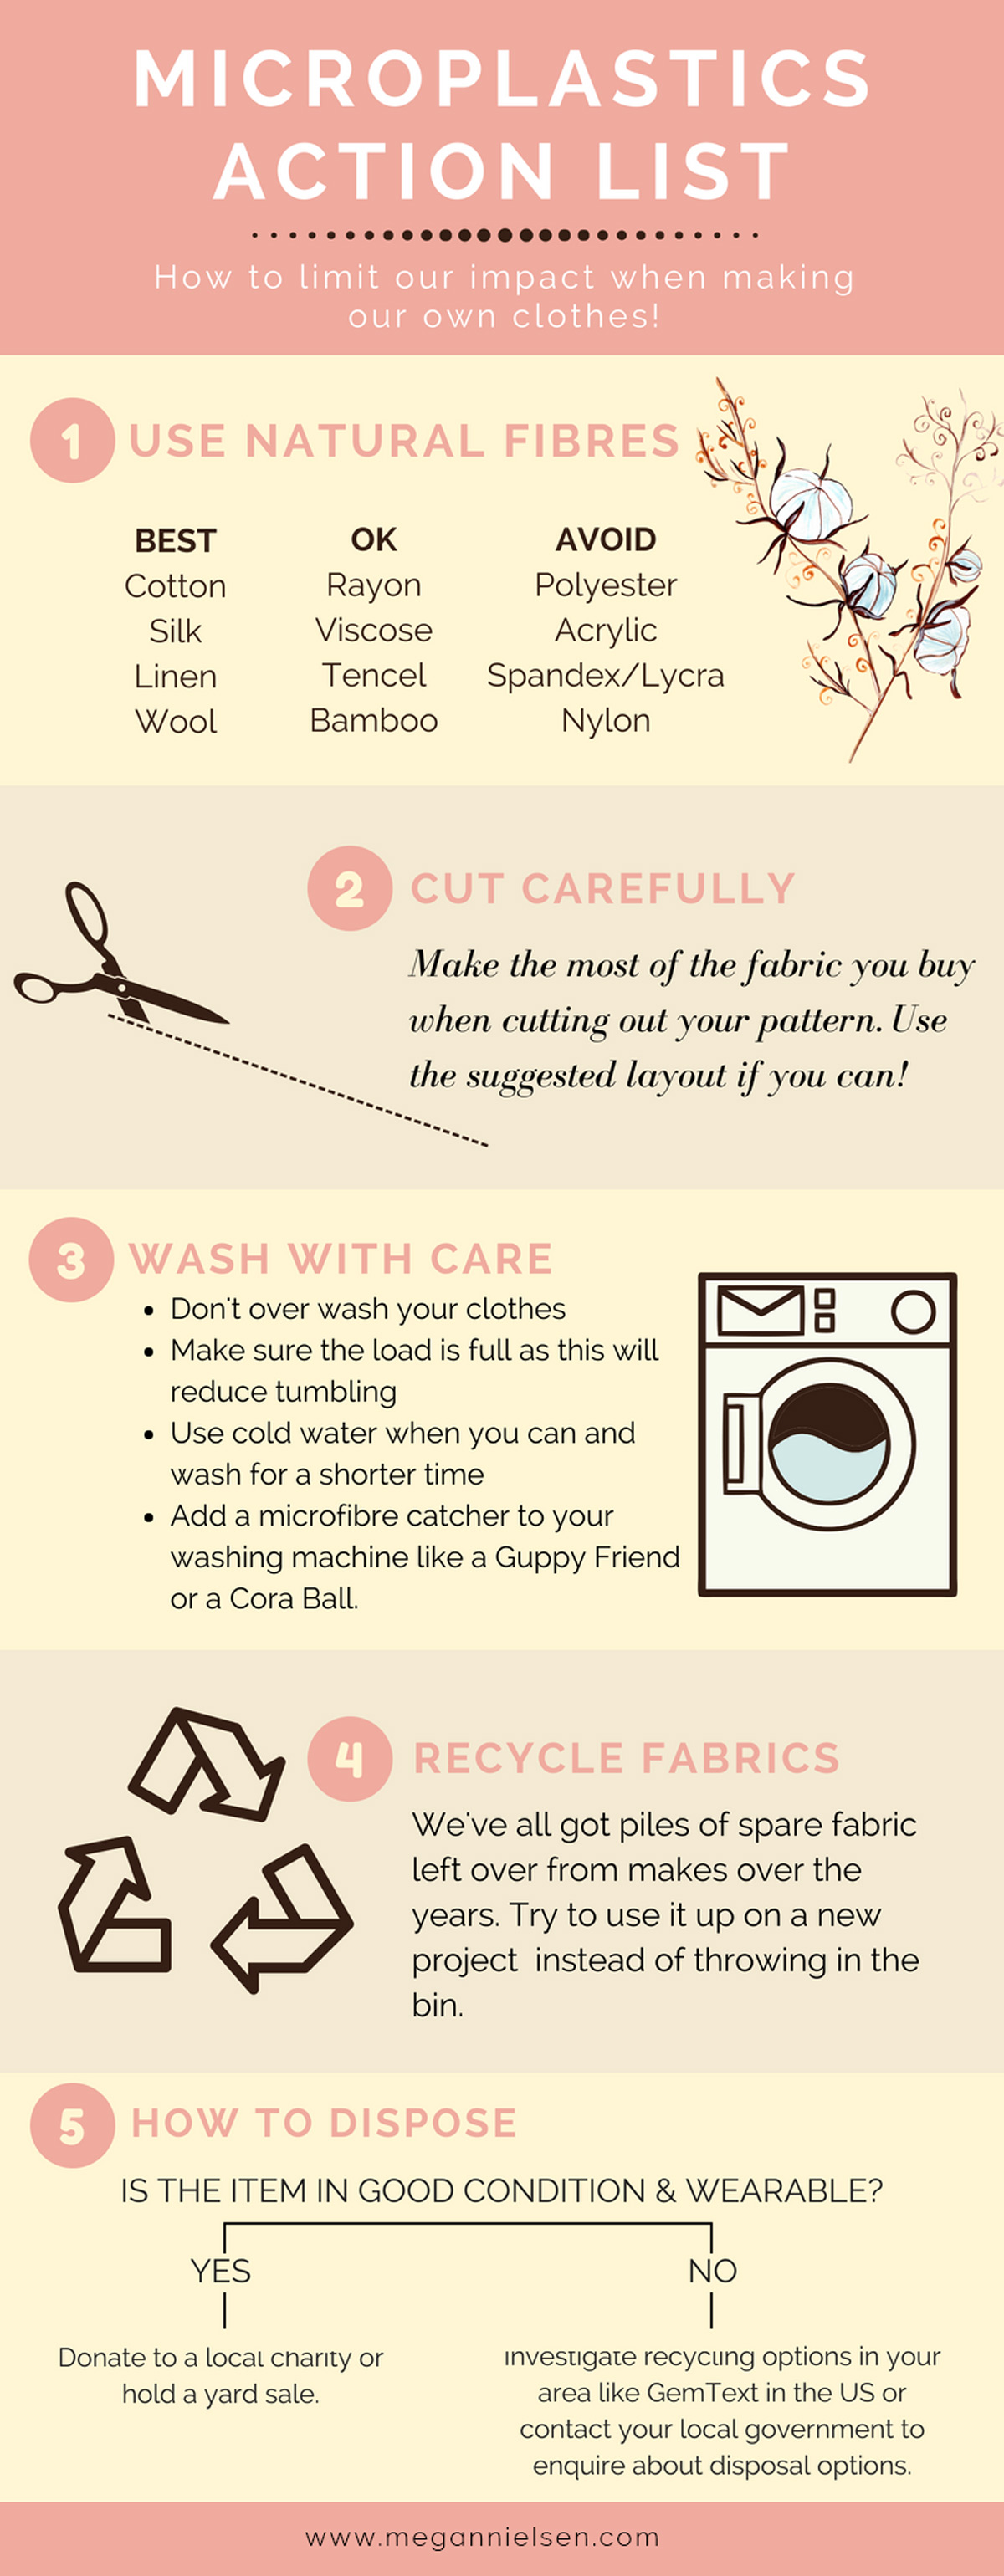 Microplastics Action List - How to limit our impact when making our own clothes! // Sustainable sewing series on Megan Nielsen Design Diary